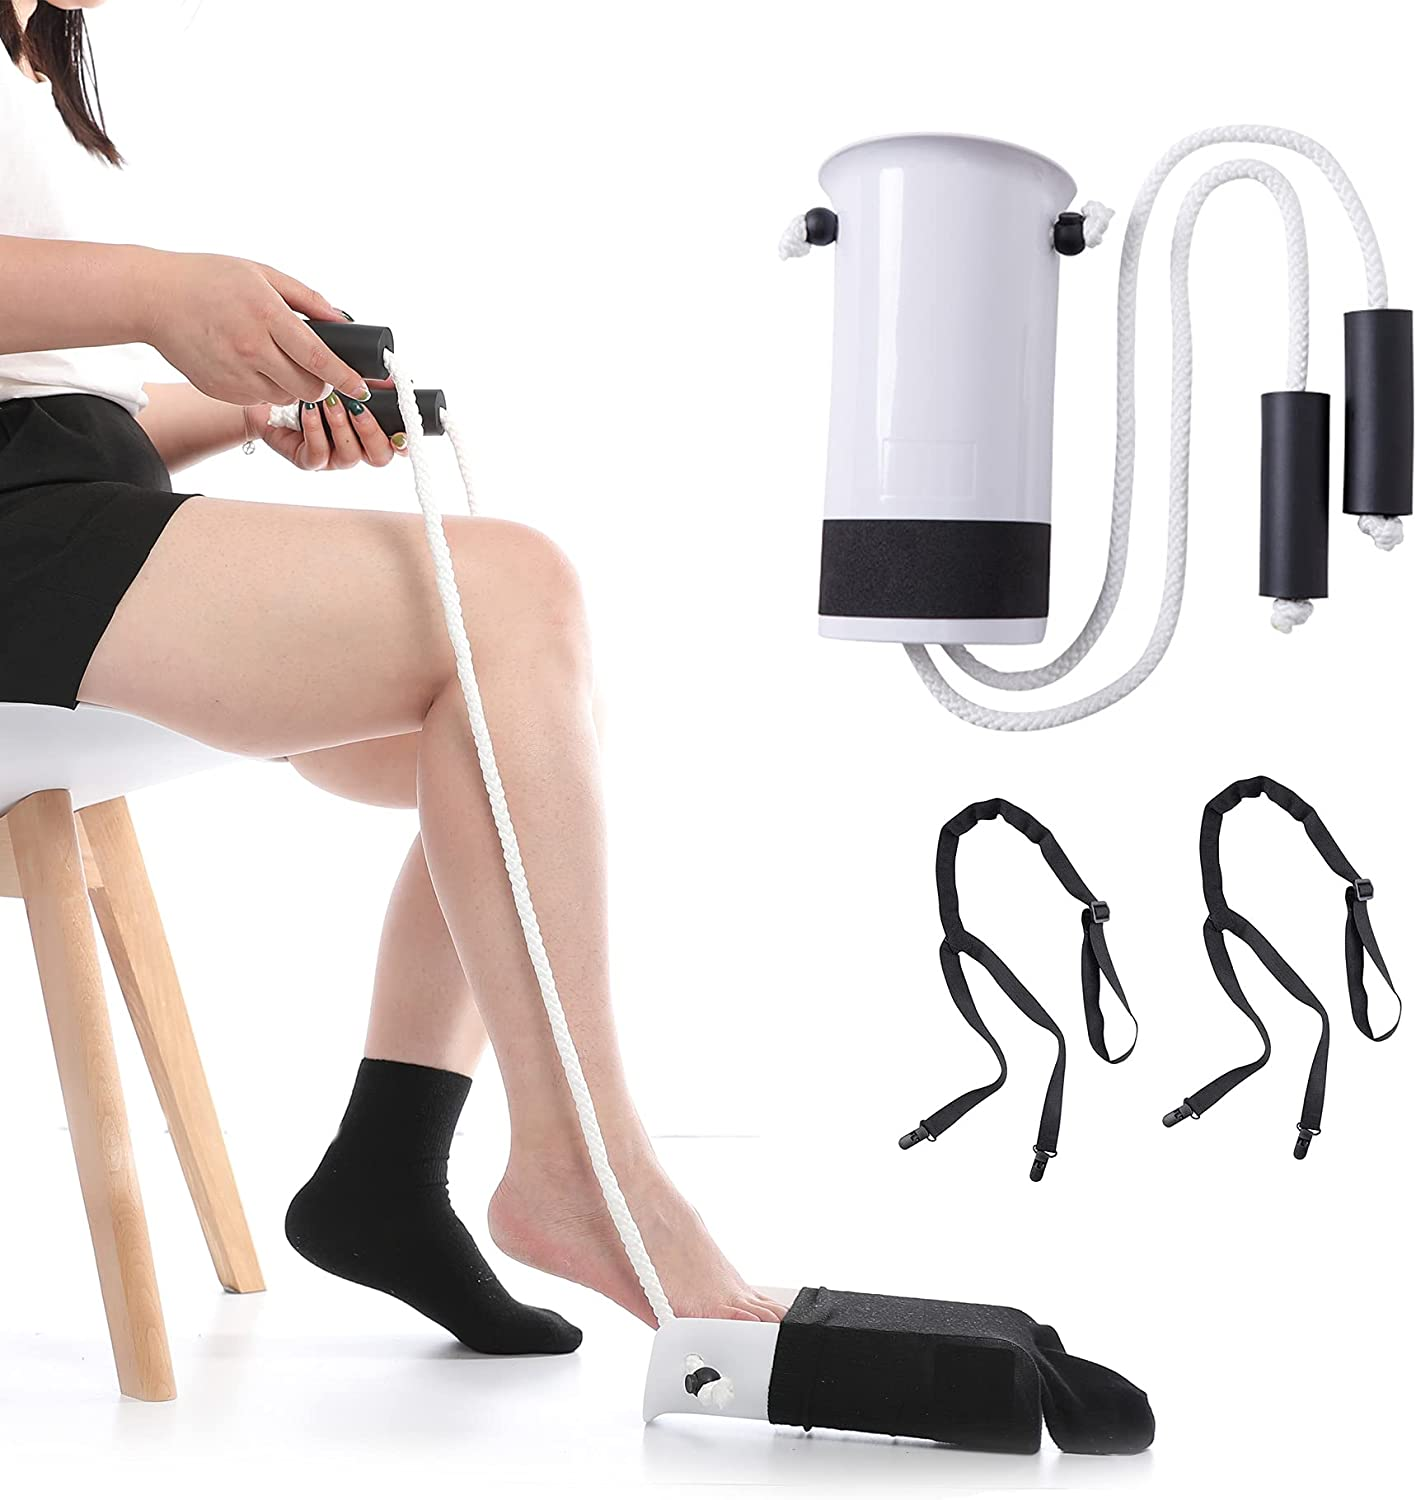 Sock Aid Tool and Pants Assist for Elderly, Disabled,Pregnant, Diabetics-Fanwer Easy On Stocking Slider with Foam Grip 33 inch Cord Puller: Health & Personal Care